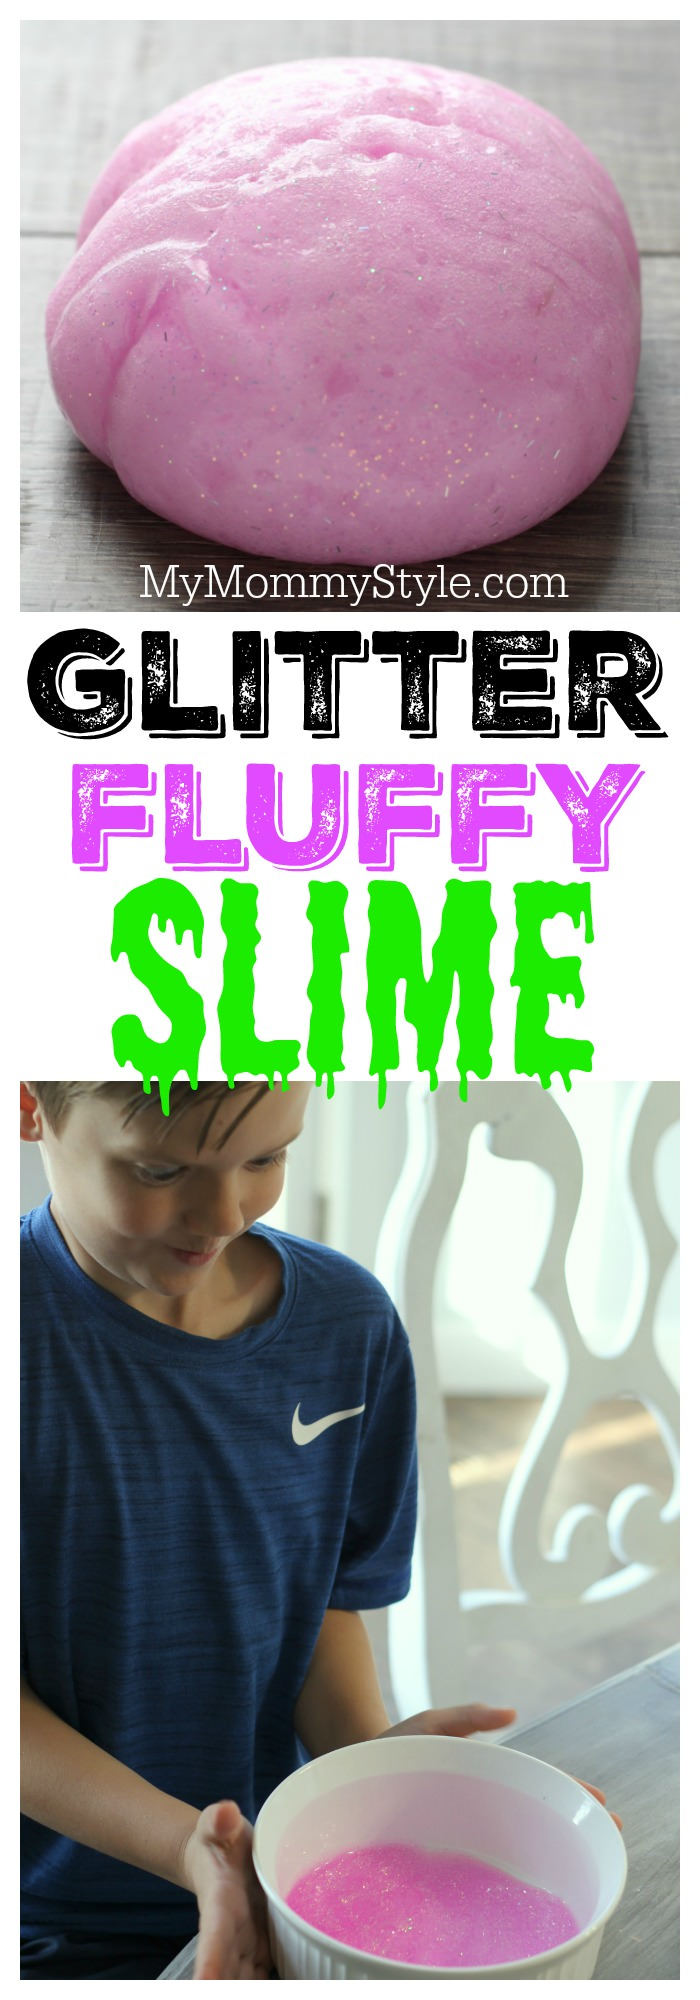 Creating this Fluffy Slime with Glitter is just as fun as playing with it. Keep your kids busy for hours with this easy five step recipe. via @mymommystyle